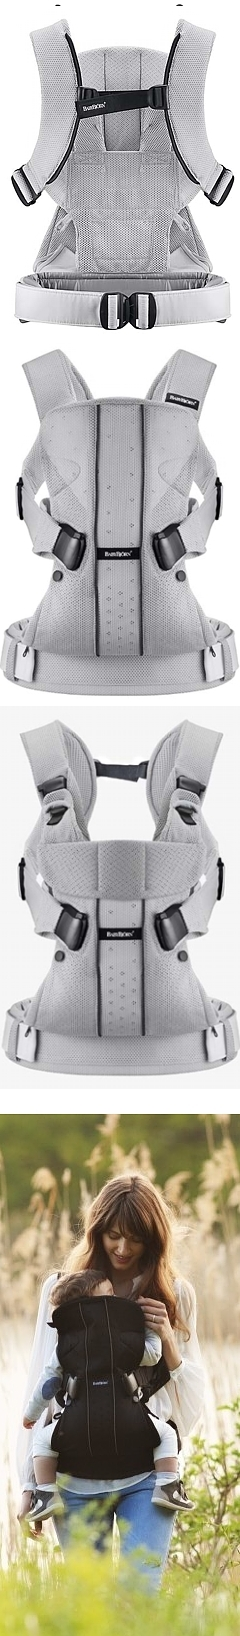 Nosidło BabyBjorn Carrier One AIR 2015/2016